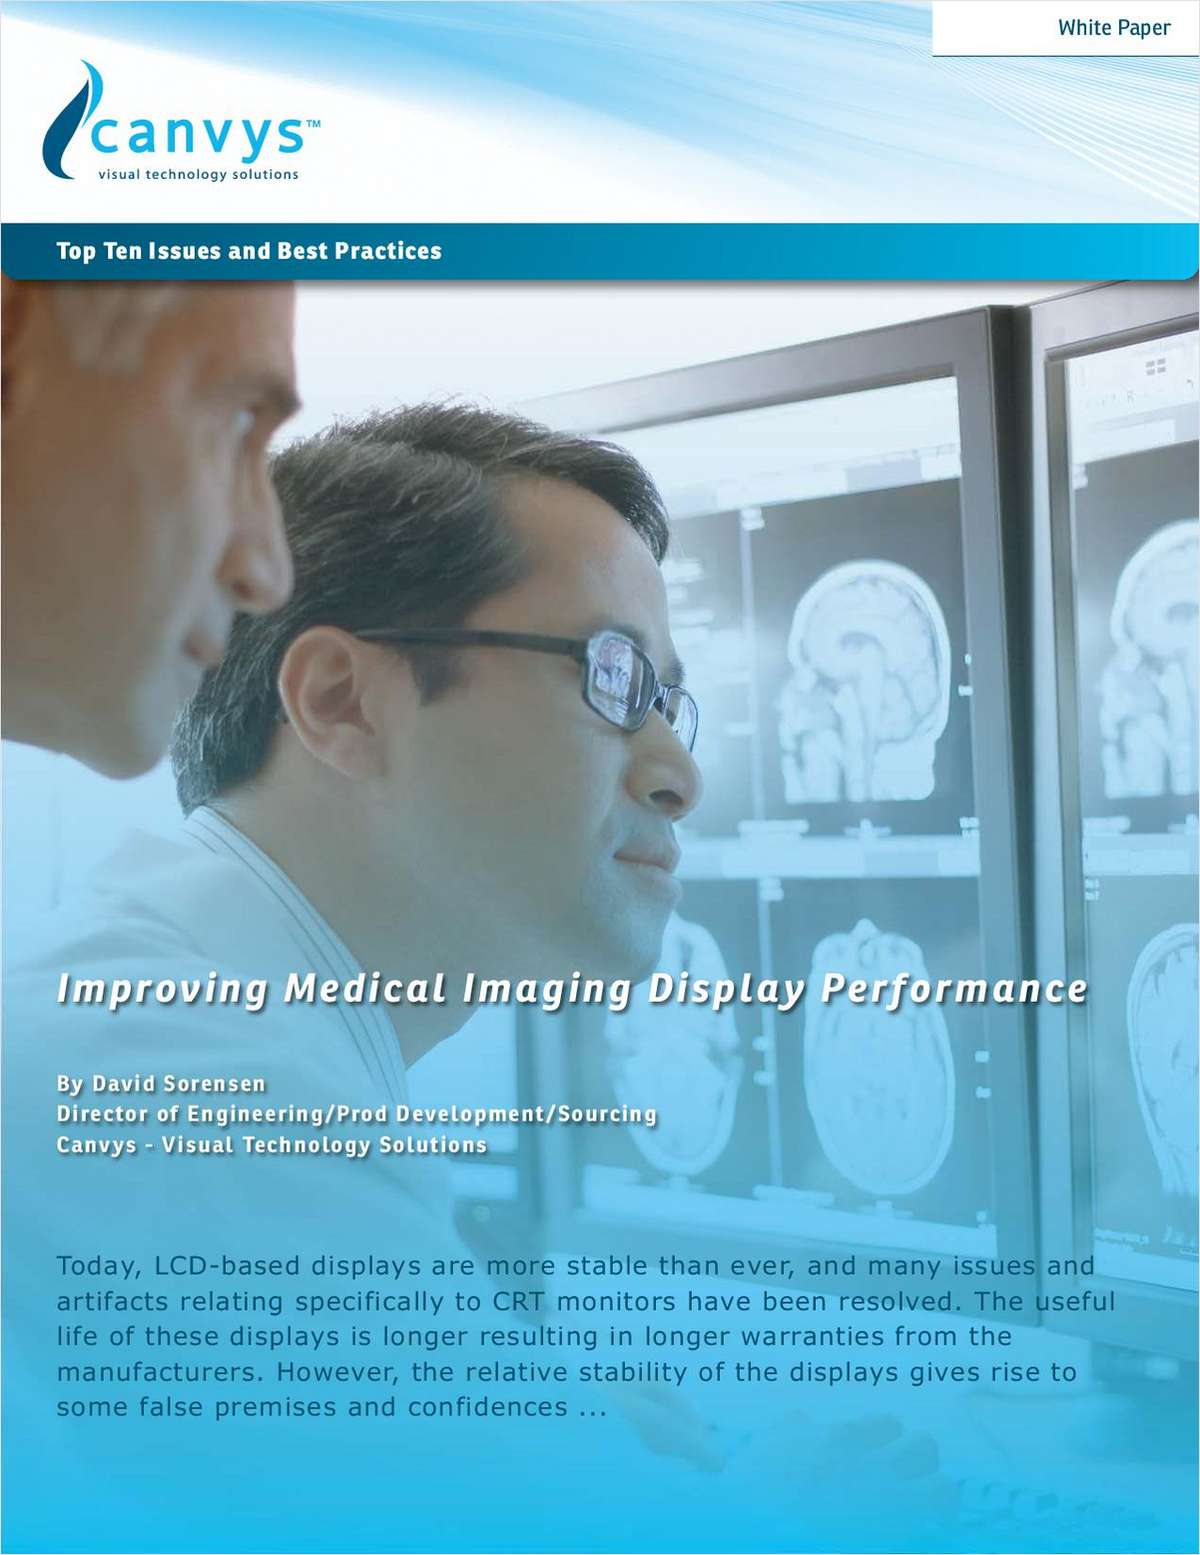 Improving Medical Imaging Display Performance